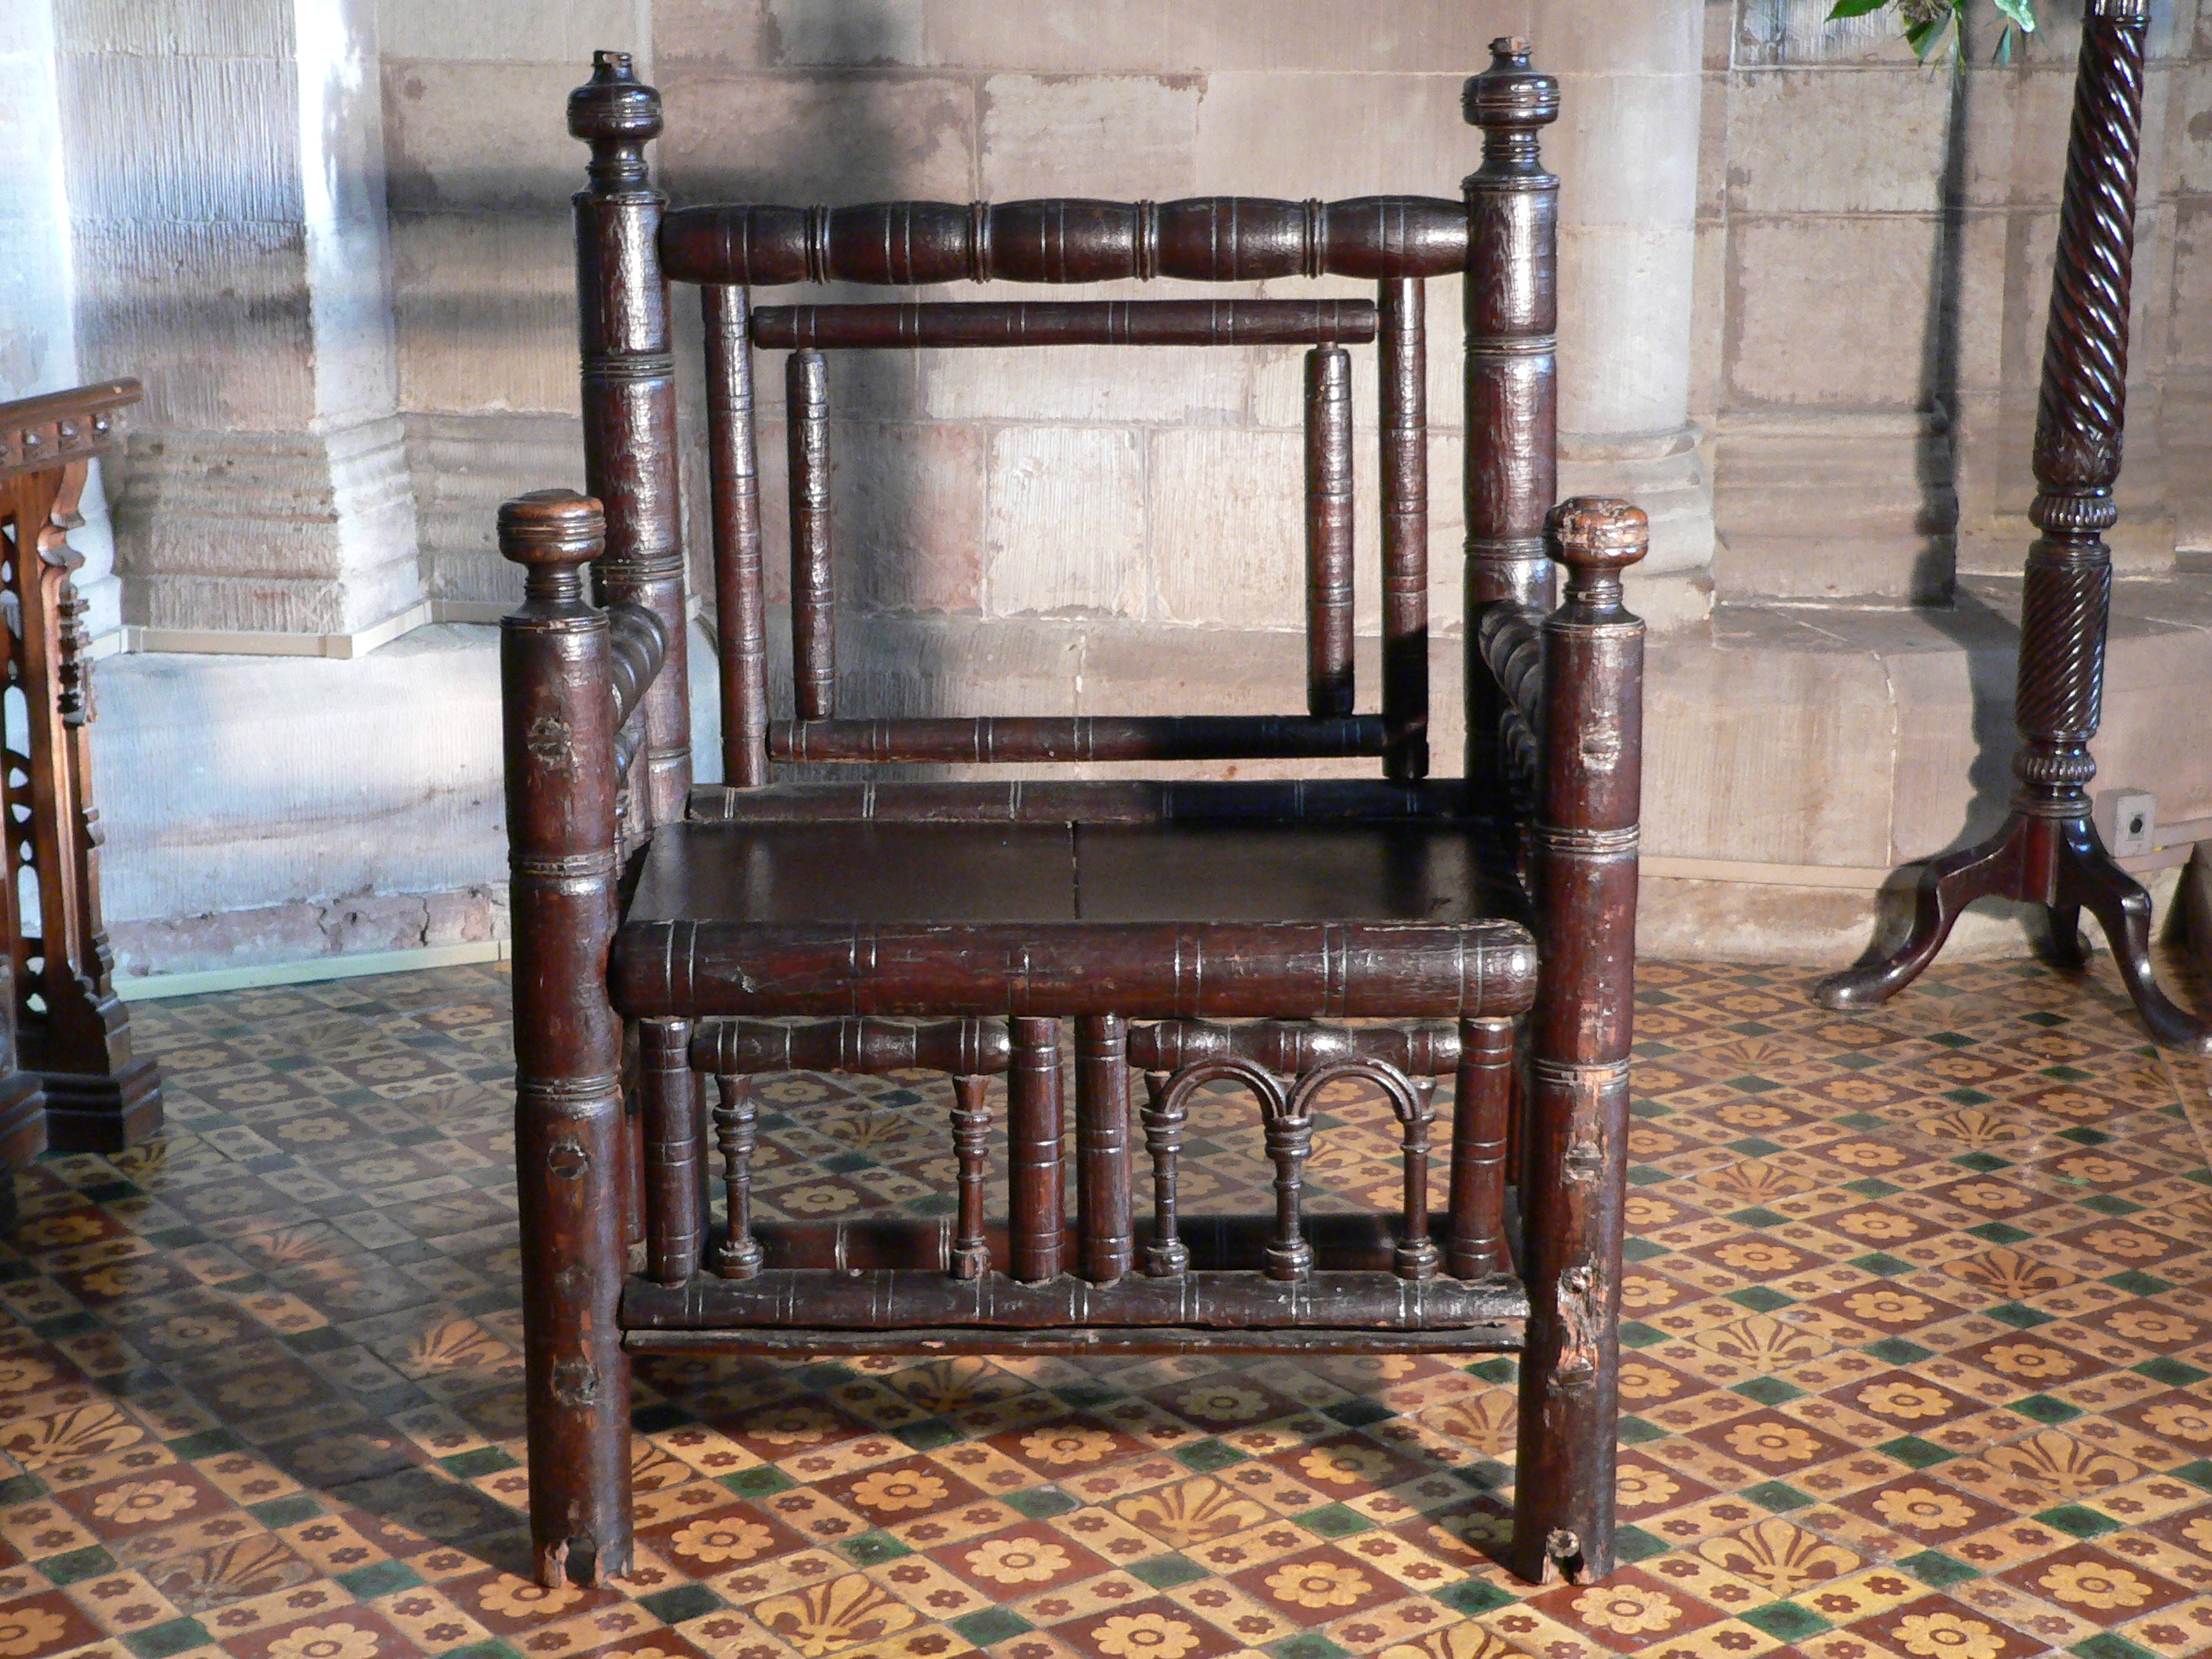 The original medieval chair from Hereford Cathedral